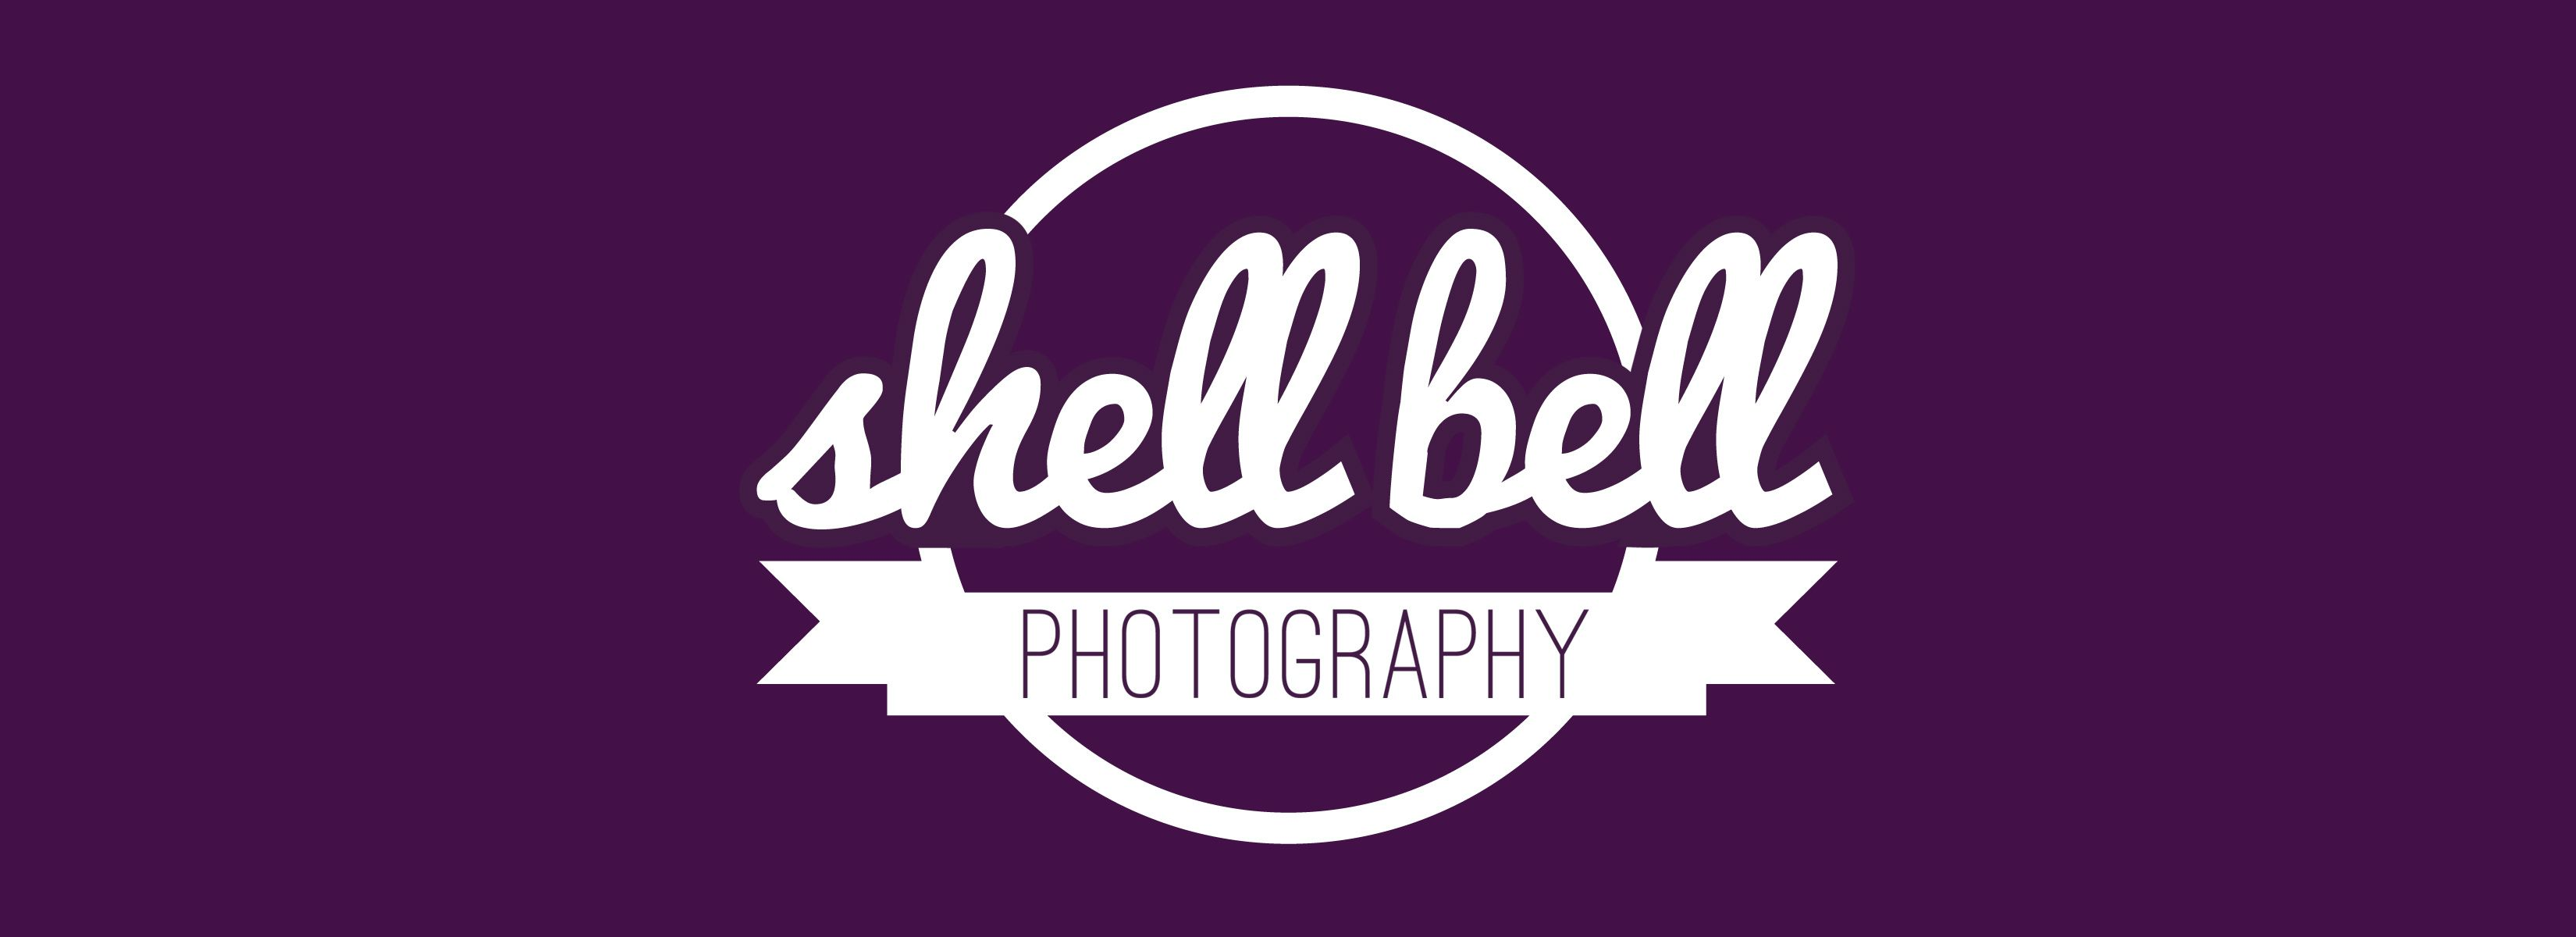 Shell Bell Photography, Branson, MO Wedding and Family